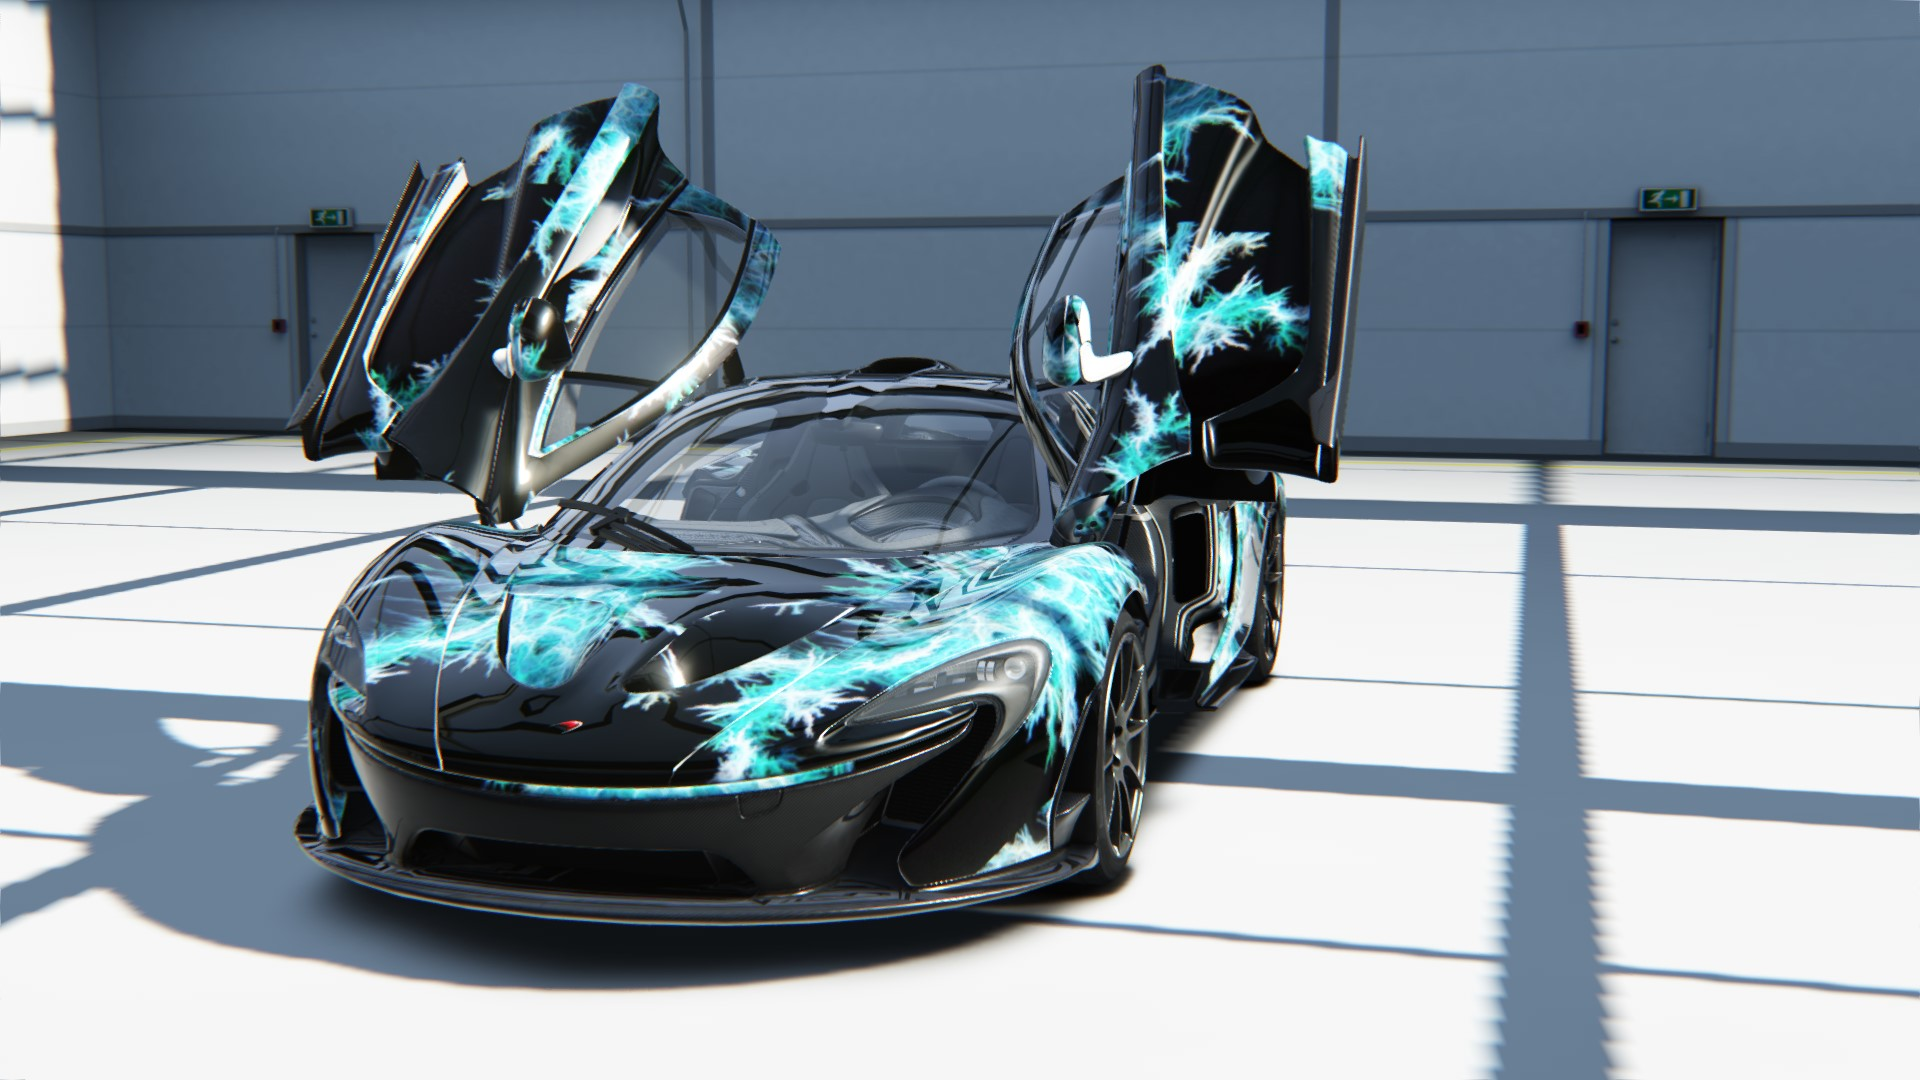 Showroom_ks_mclaren_p1_16-8-2016-16-58-27.jpg